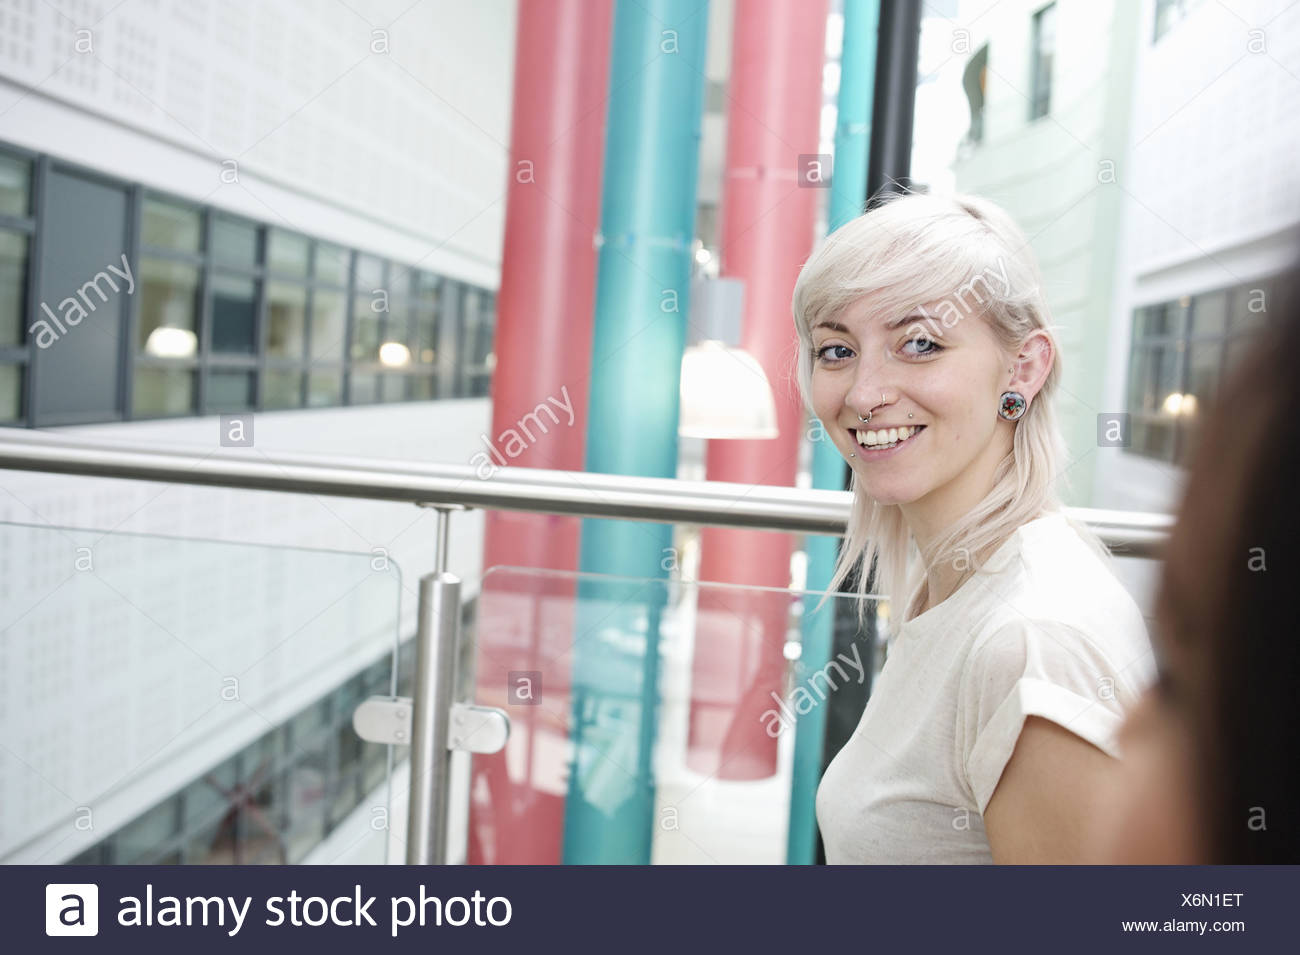 Young woman with blonde hair smiling, portrait Stock Photo